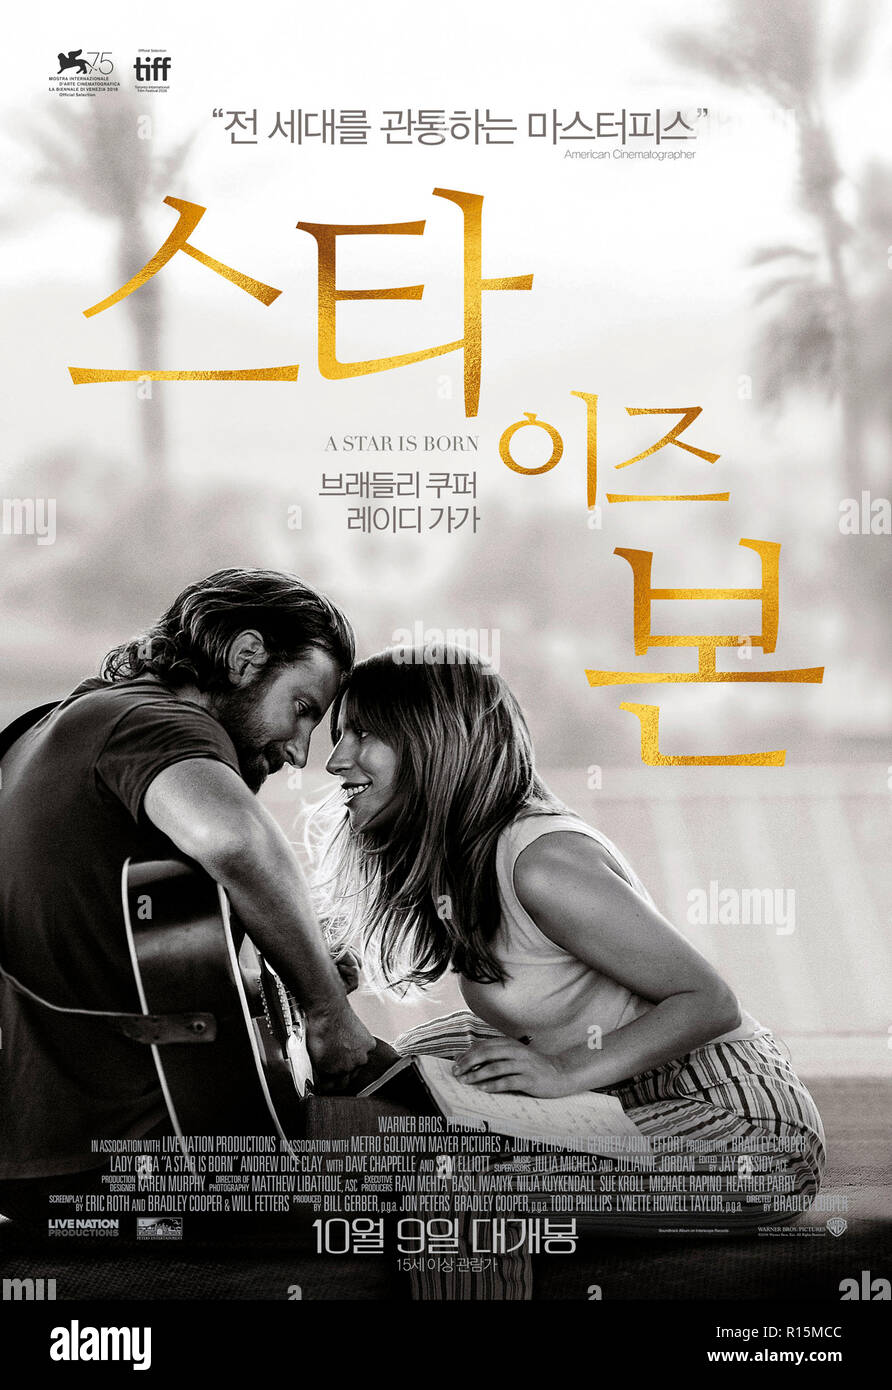 Prod DB © Warner Bros. - Gerber Pictures - Joint Effort - Malpaso Productions - Thunder Road Pictures / DR A STAR IS BORN de Bradley Cooper 2018 USA a - Stock Image